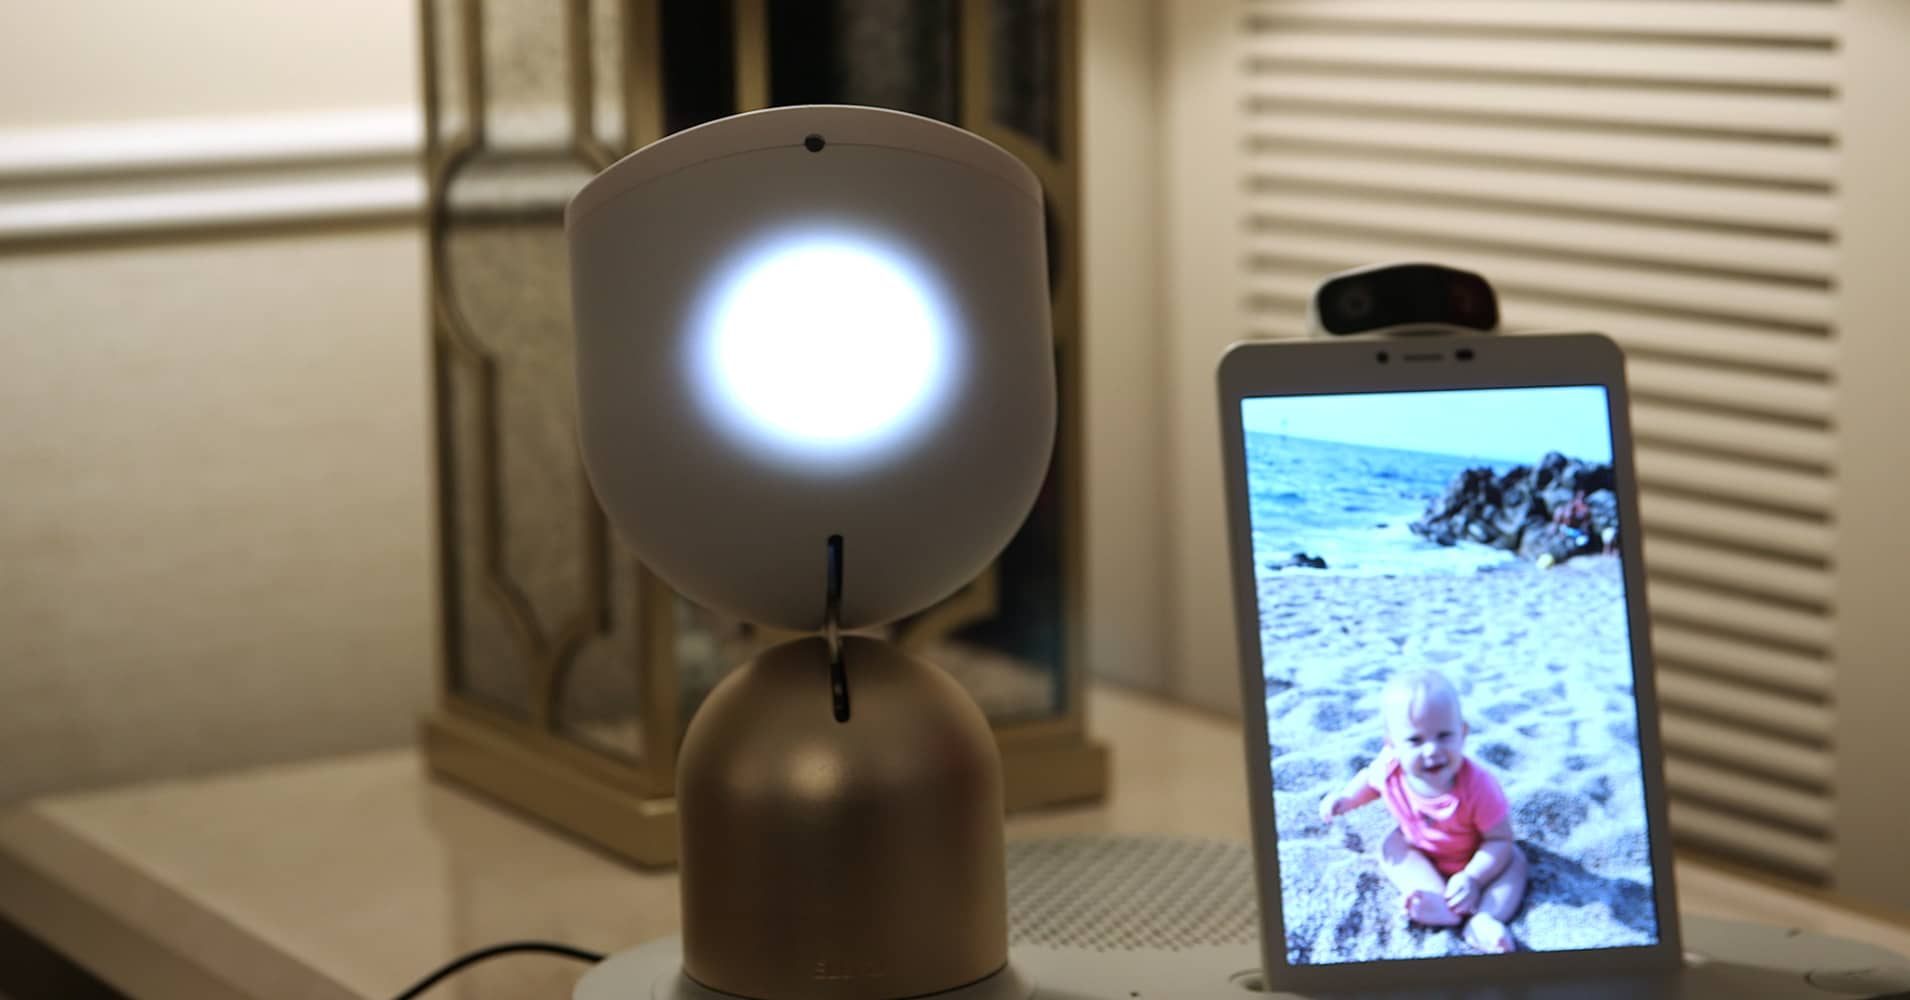 Here's a smart robot for the elderly that can play videos, chat and more